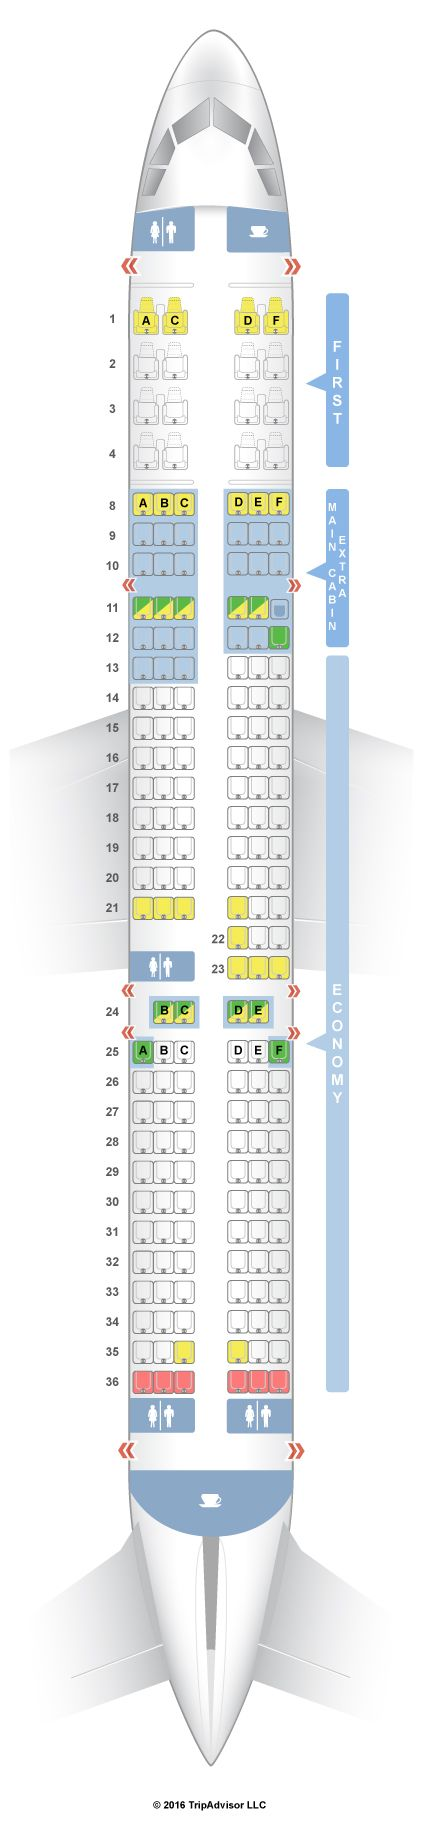 17 Best Ideas About A321 Seat Map On Pinterest Airbus